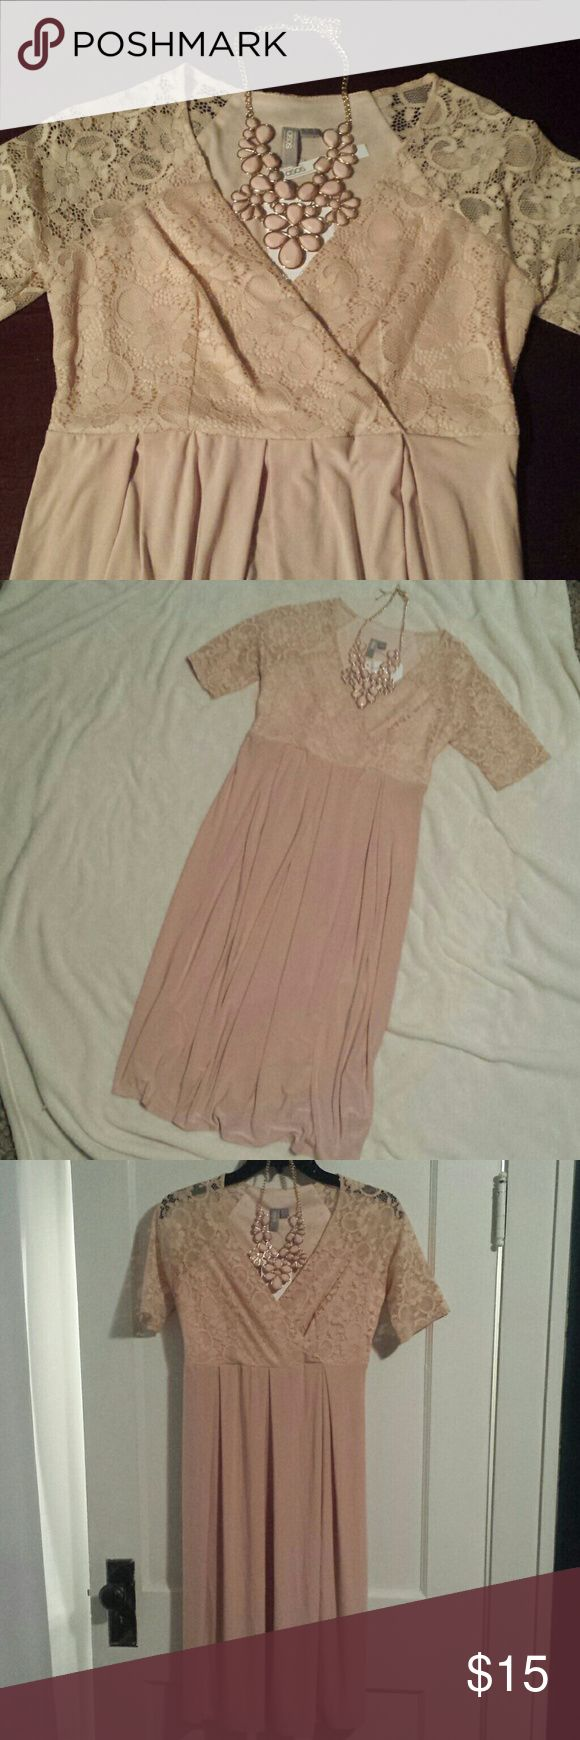 NWT ASOS pink maternity dress Light pink, blush, nude colored maternity dress new with tags!! This dress is a size 2. I am 5'7 and this is knee length on me while 7 months pregnant. The model is 5'11 and is wearing a size 4. Beautiful dress but the color was not right for me. Beautiful lace top with flowy soft bottom. Necklace not included :) ASOS Maternity Dresses